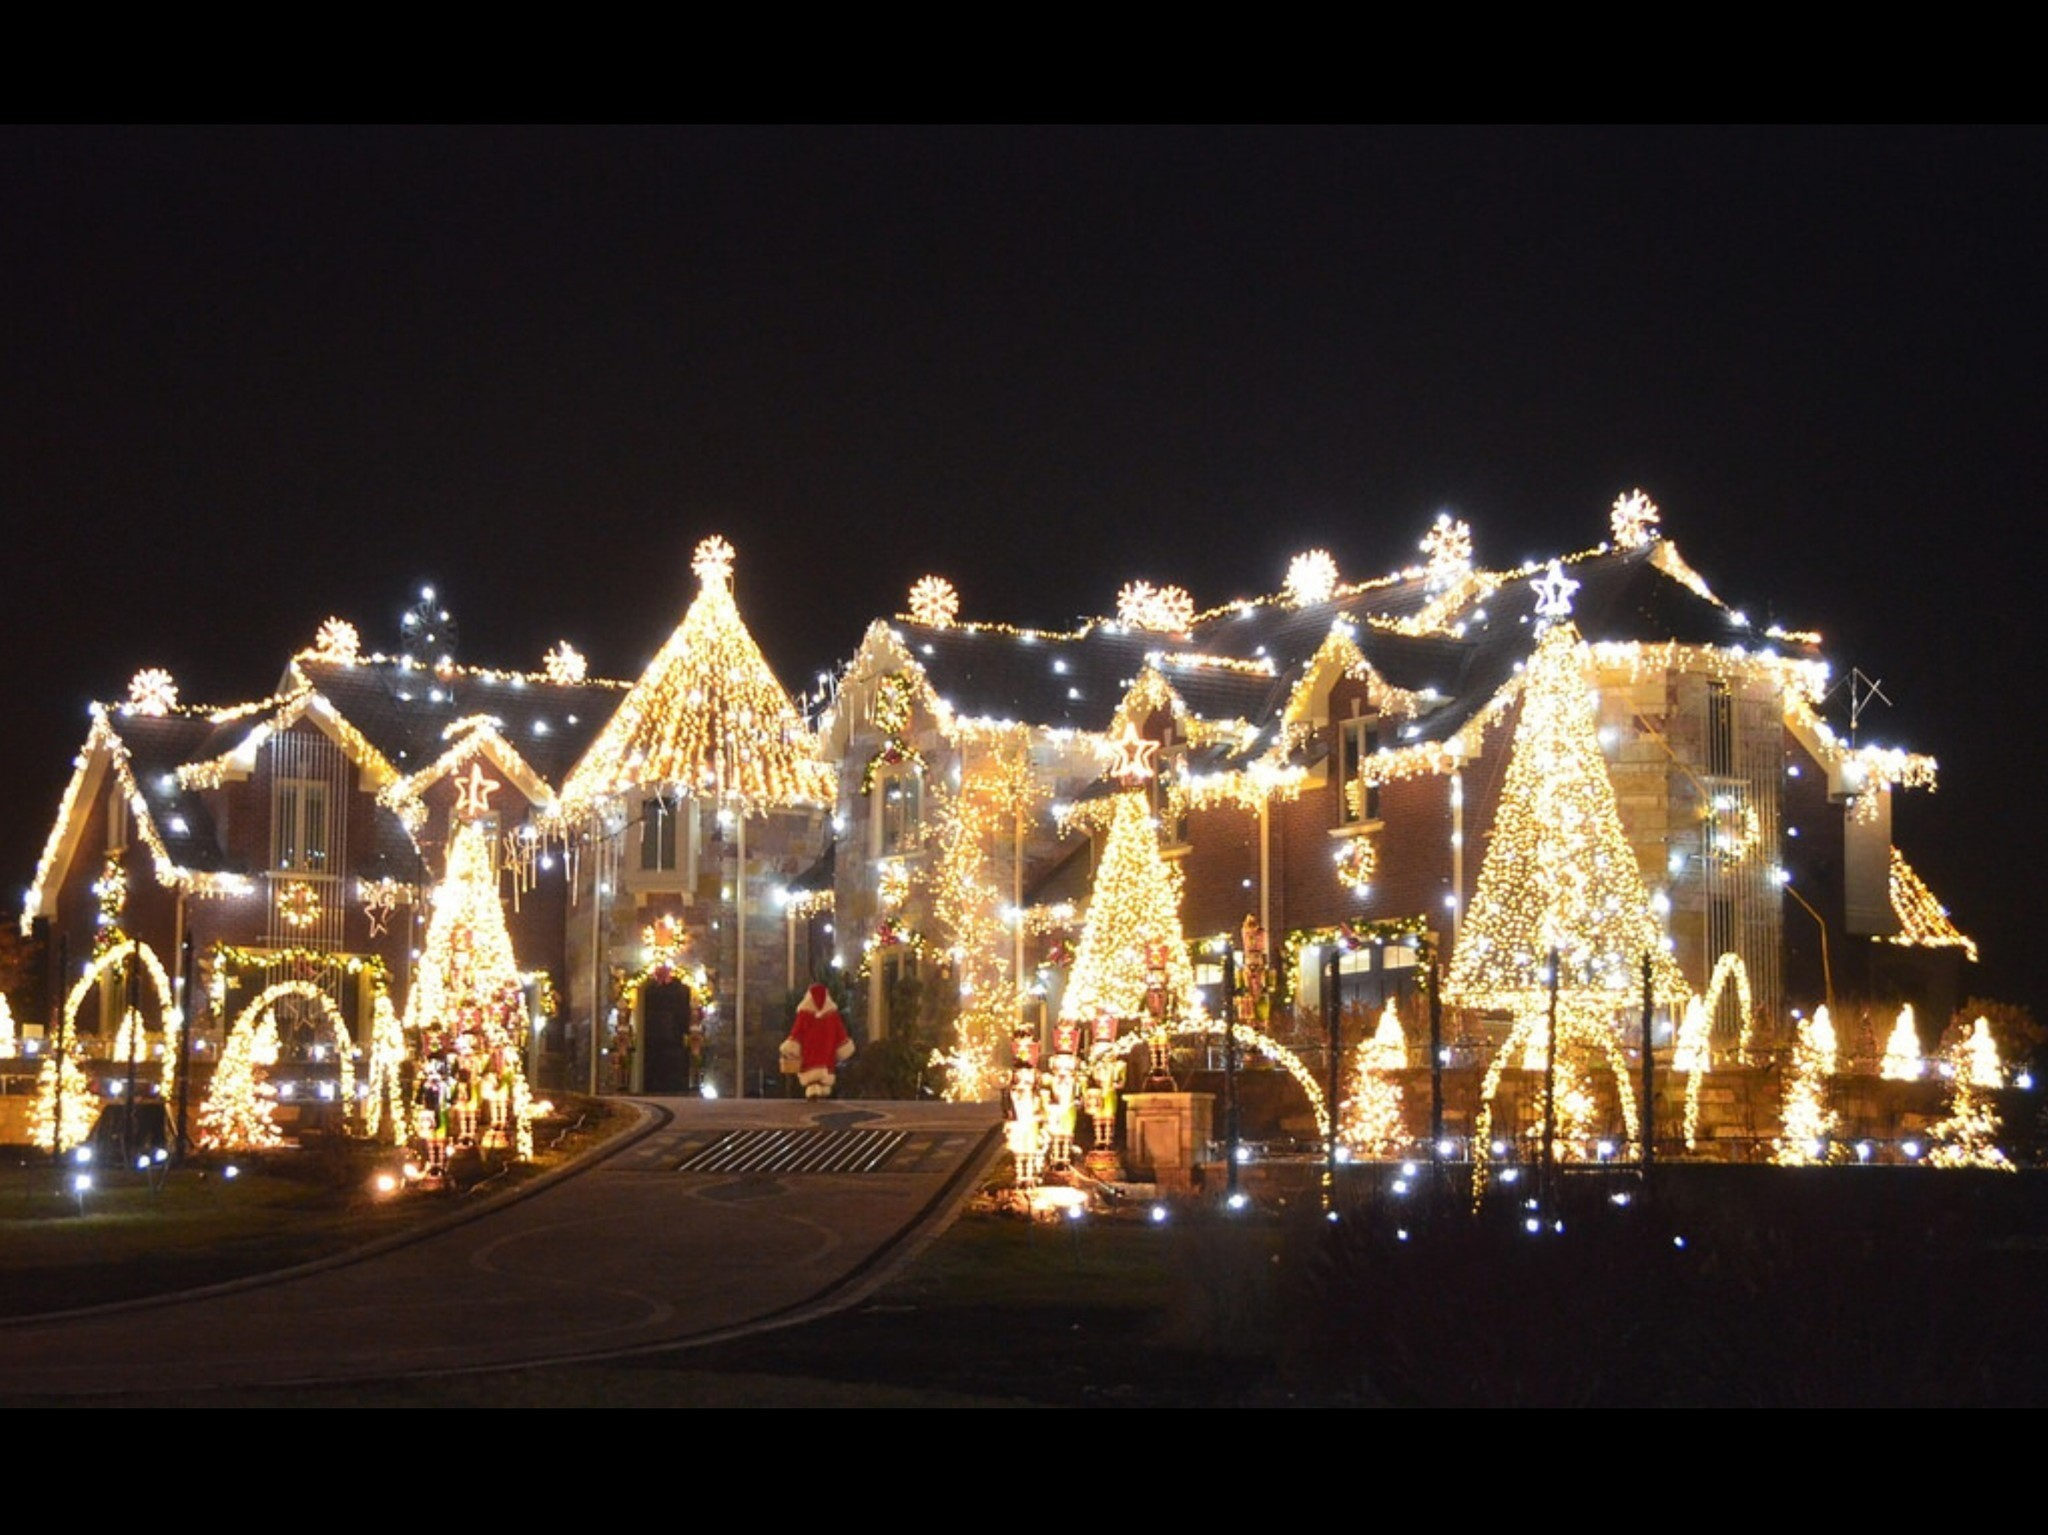 Donations, volunteers roll in to keep holiday light spectacle alive ...